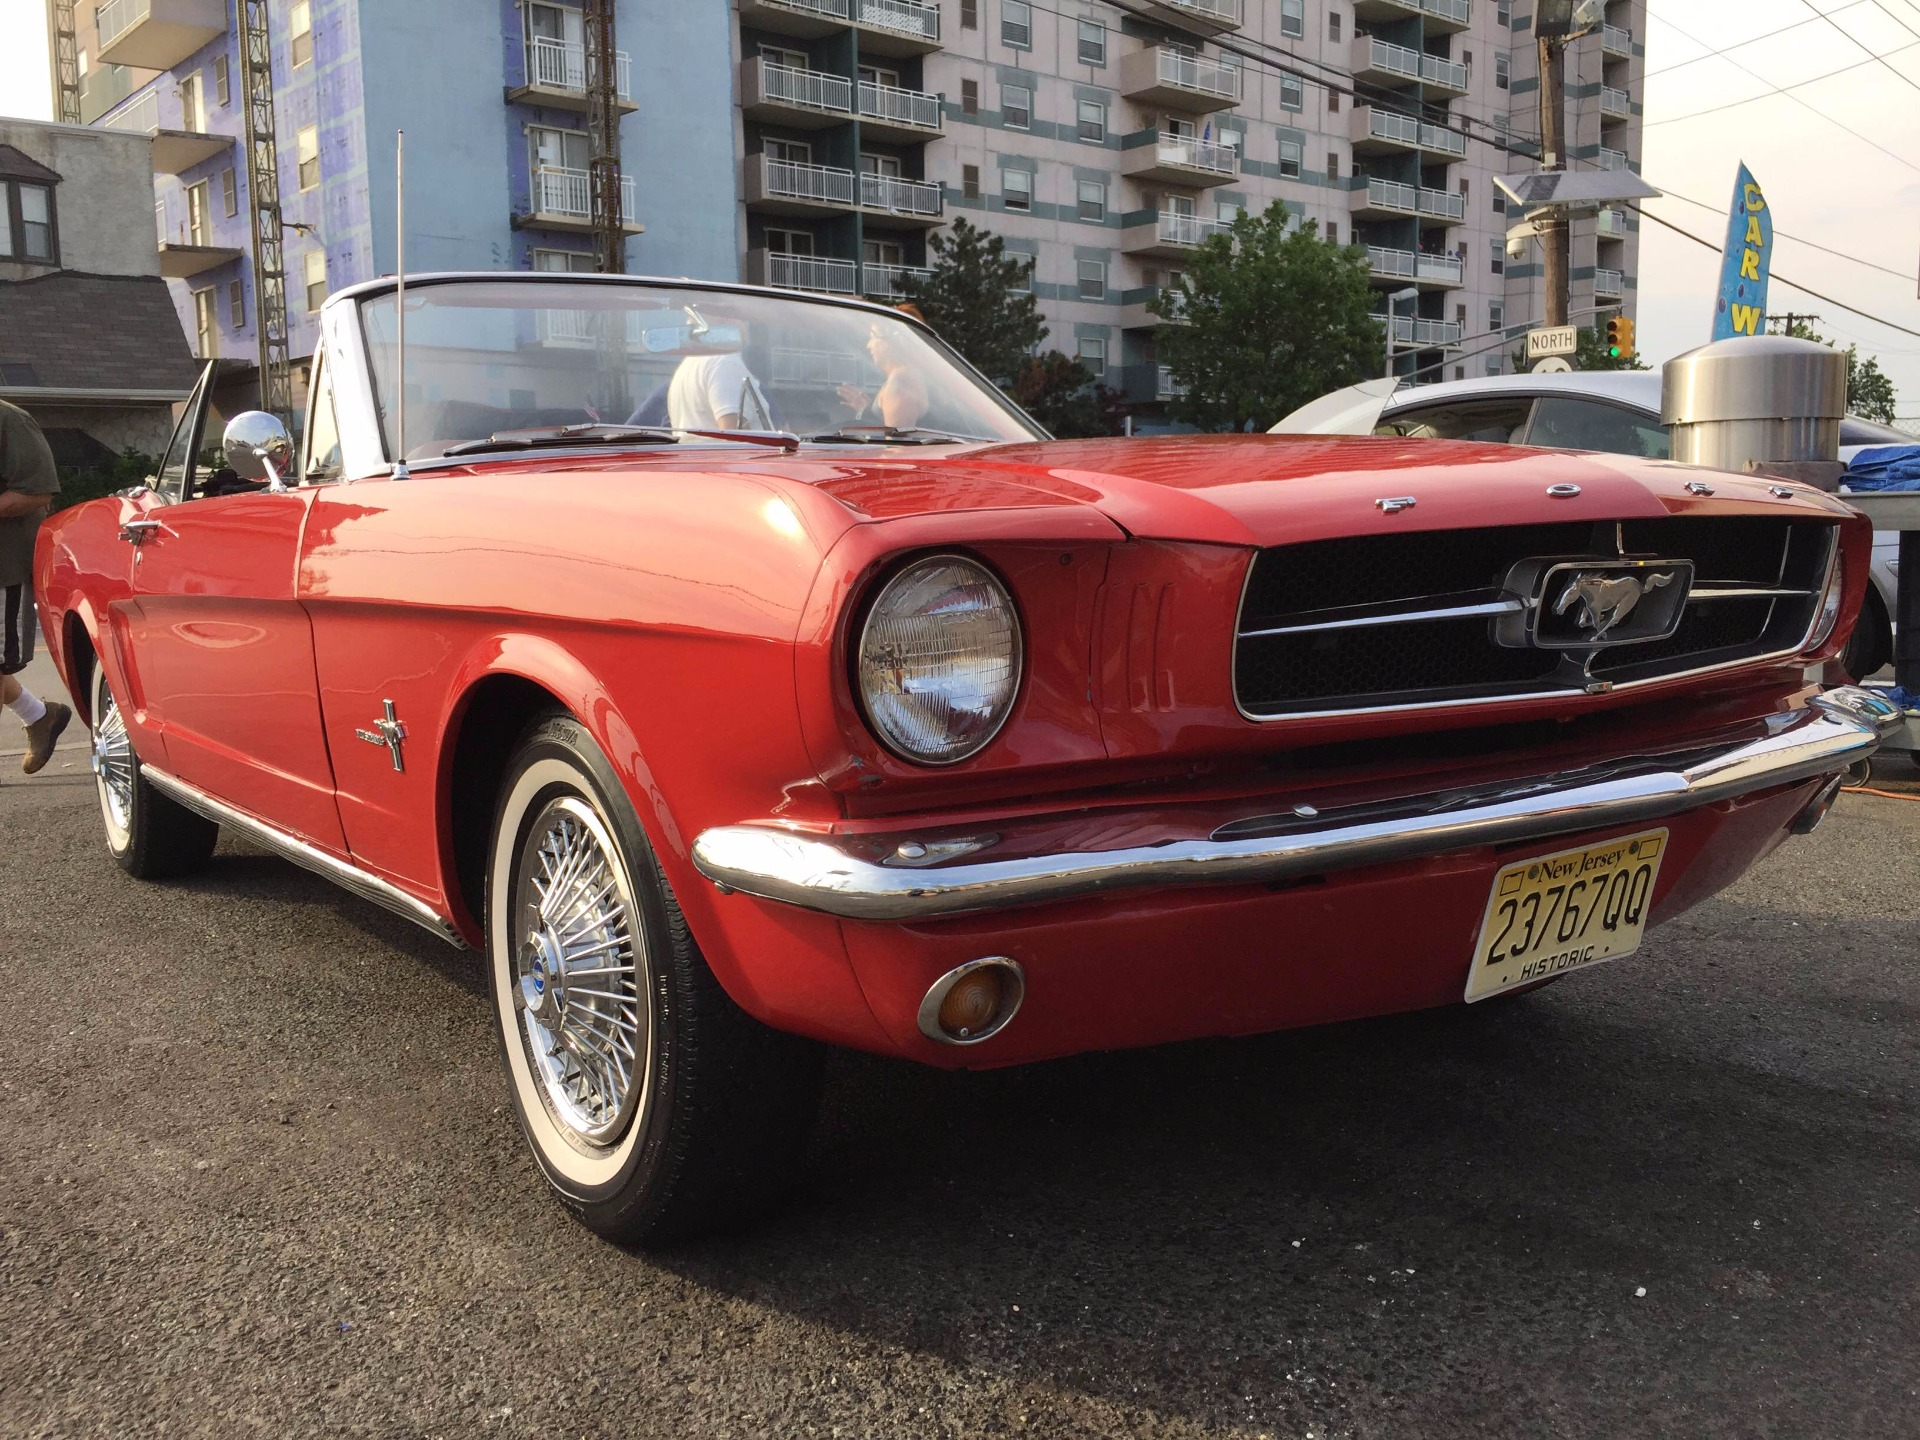 1965 ford mustang stock 1965mustang for sale near new. Black Bedroom Furniture Sets. Home Design Ideas